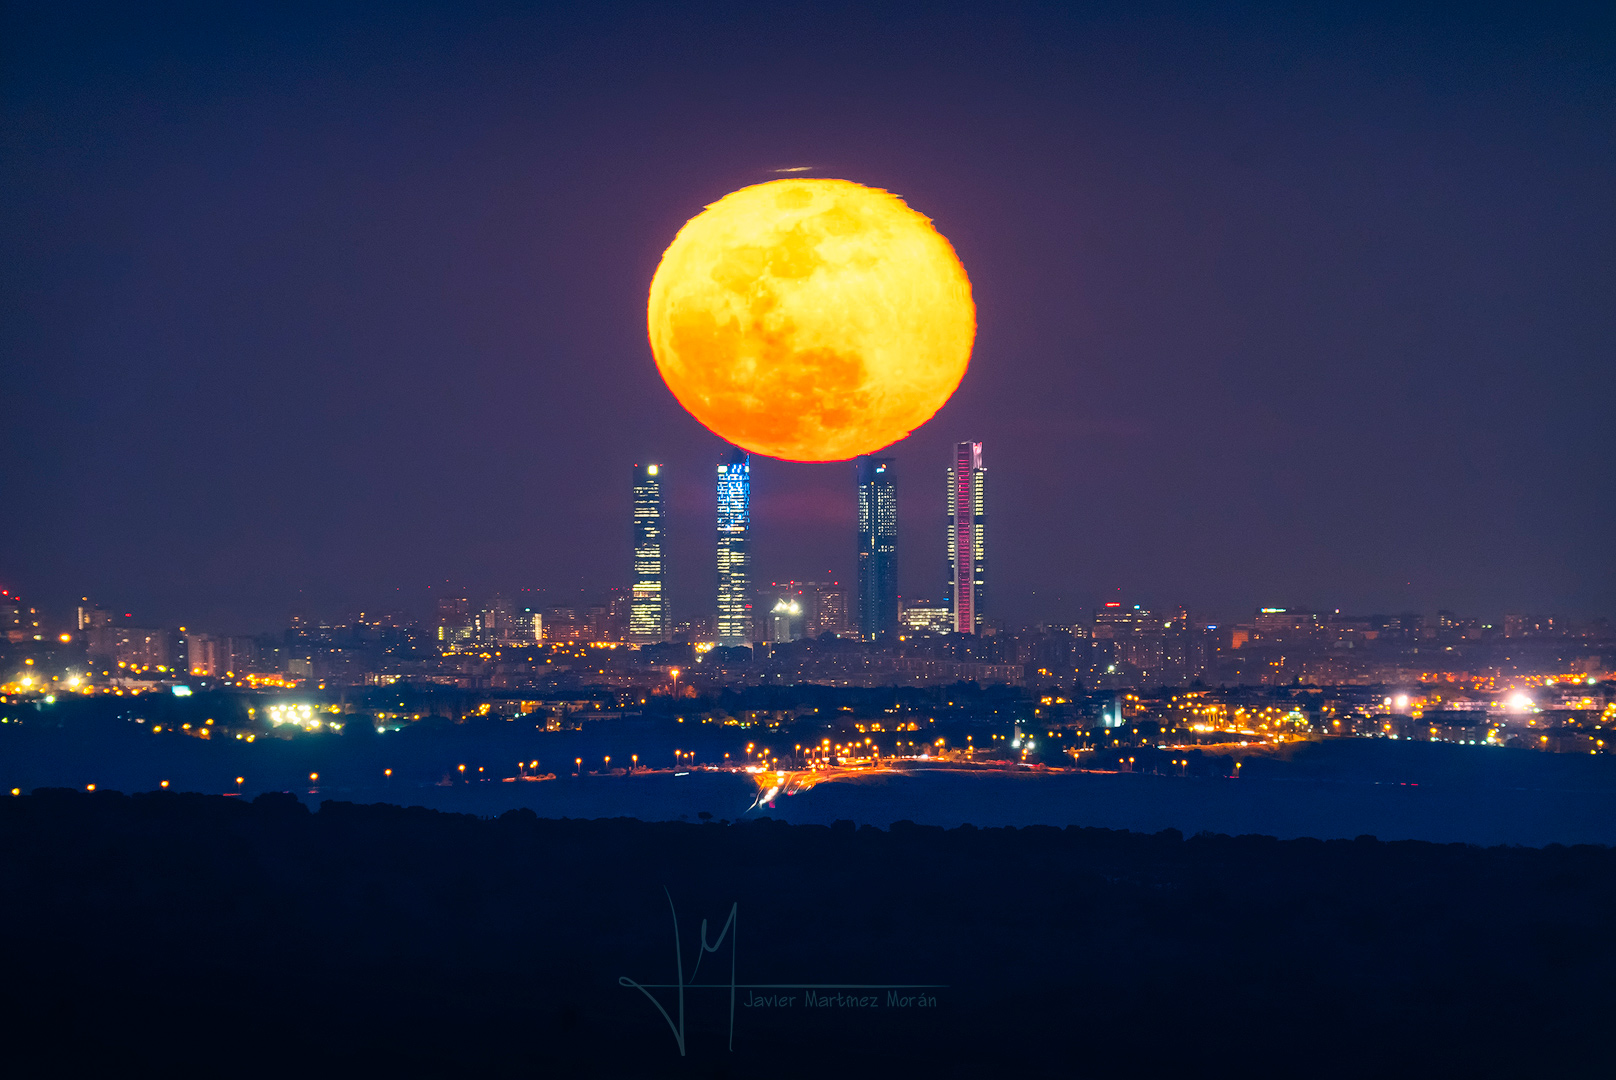 [ASTRONOMIA]   Four Towers and the Equinox Moon